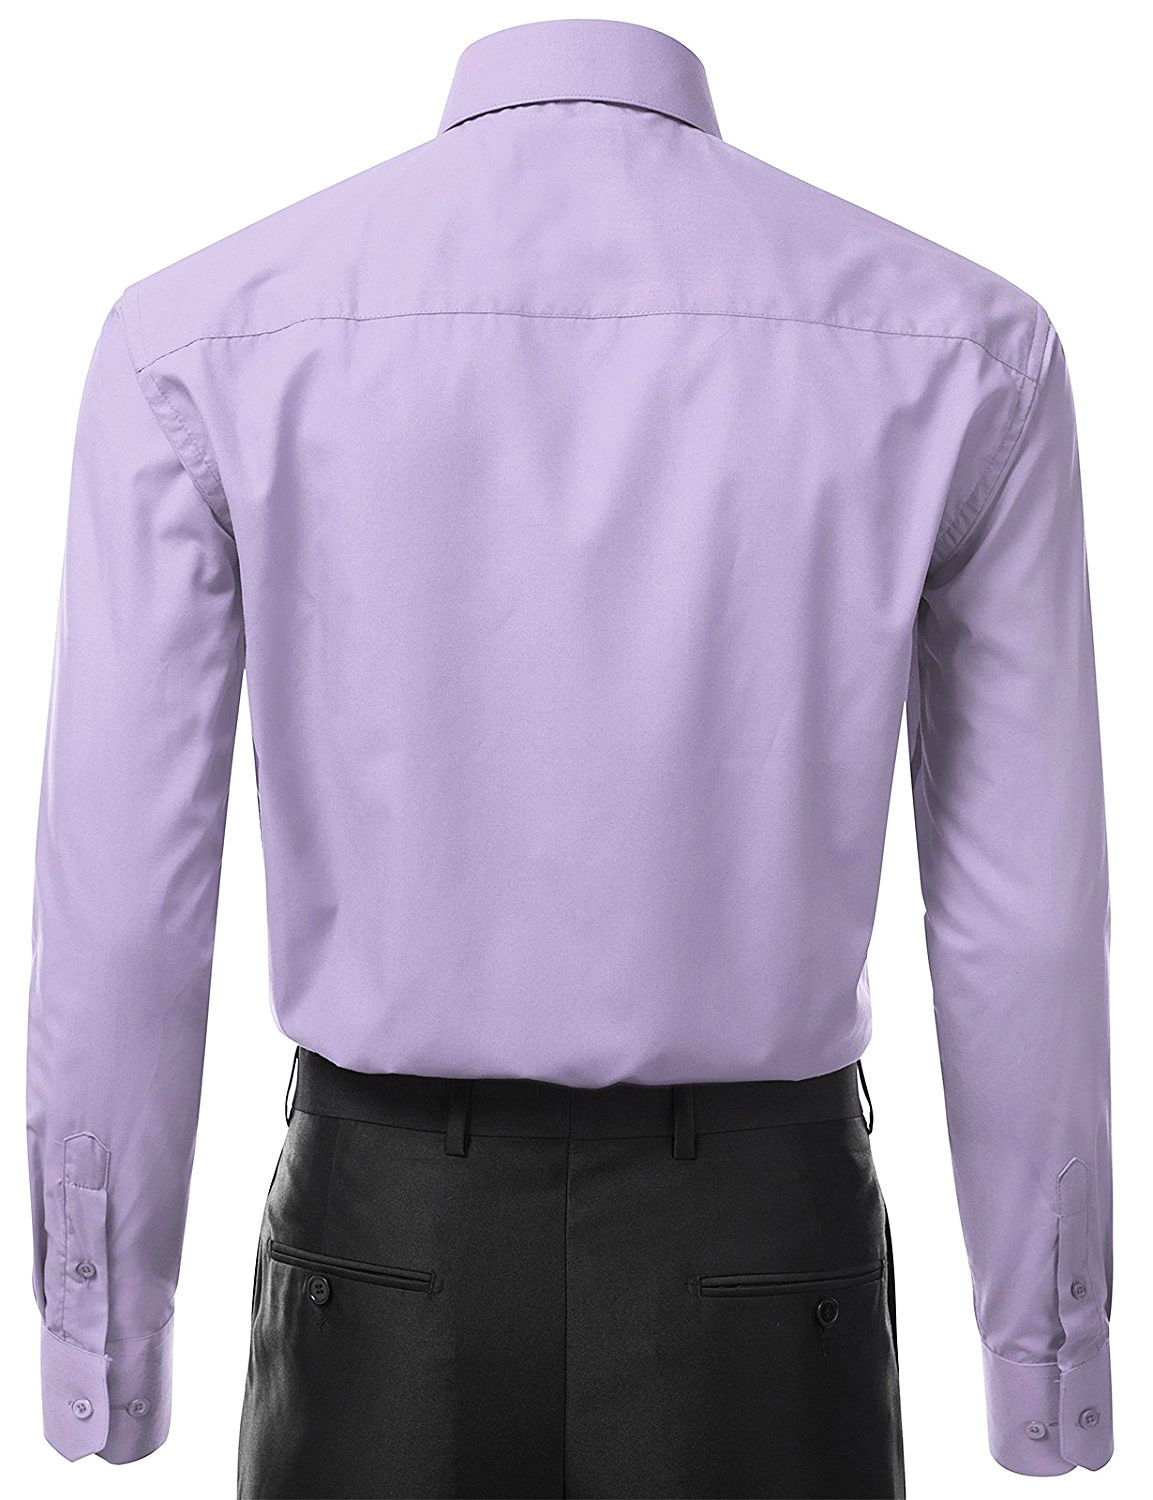 Berlioni-Italy-Men-039-s-Premium-Classic-French-Convertible-Cuff-Solid-Dress-Shirt thumbnail 61